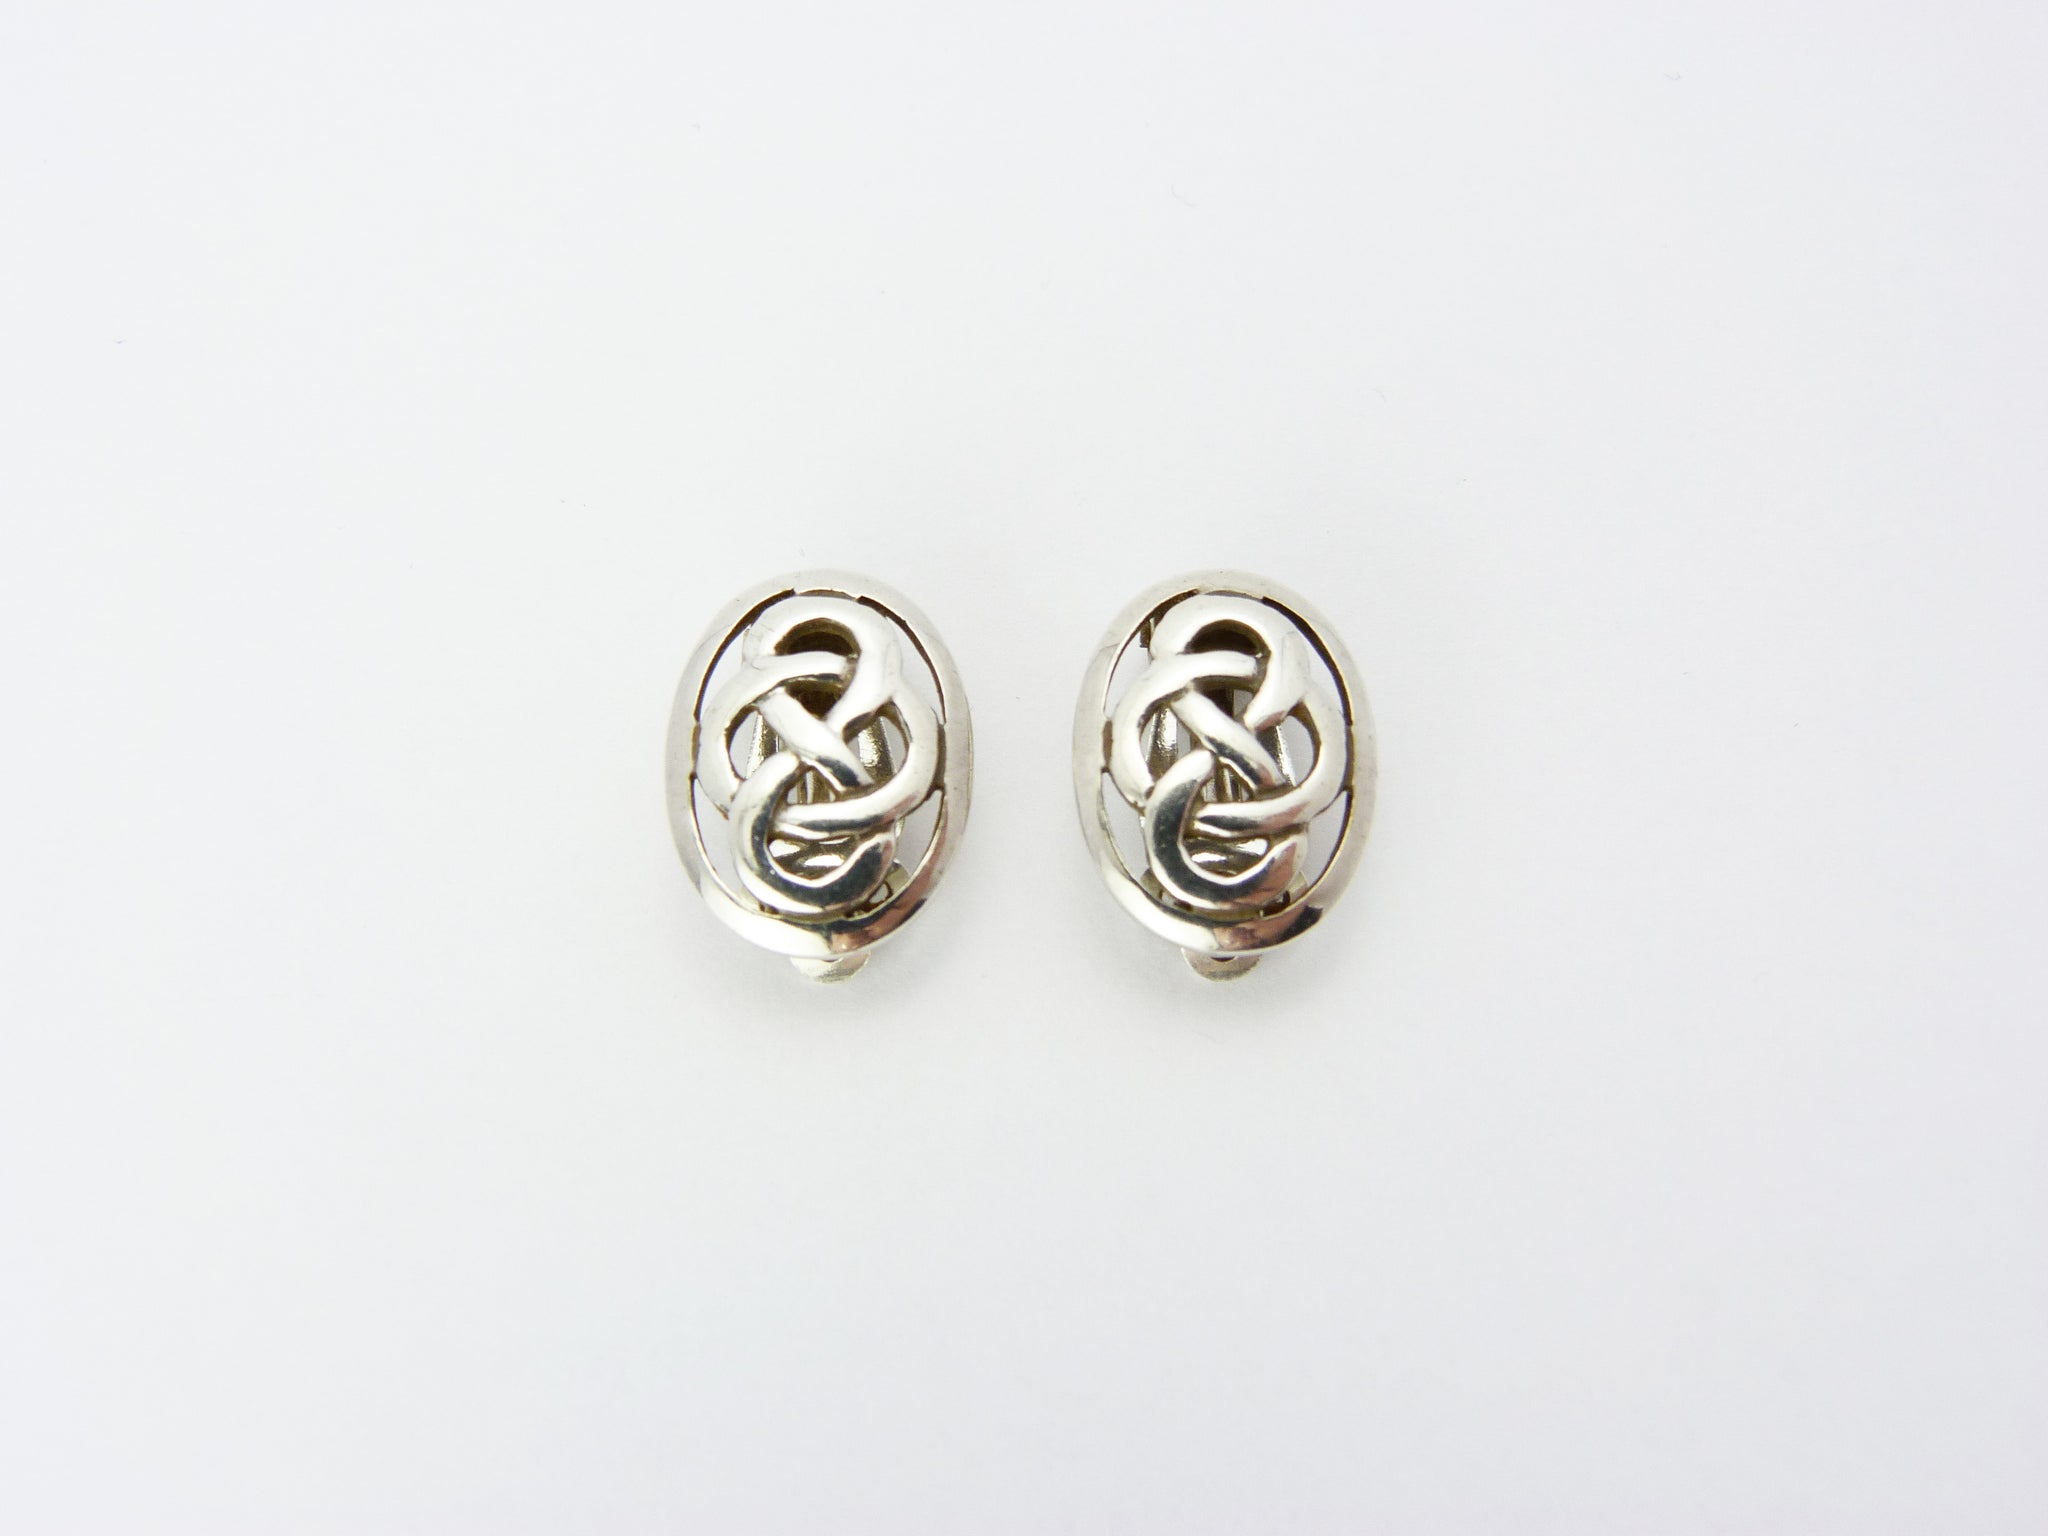 Vintage Sterling Silver Kit Heath Celtic Knot Clip On Earrings - Silver Scottish Celtic Knot Earrings